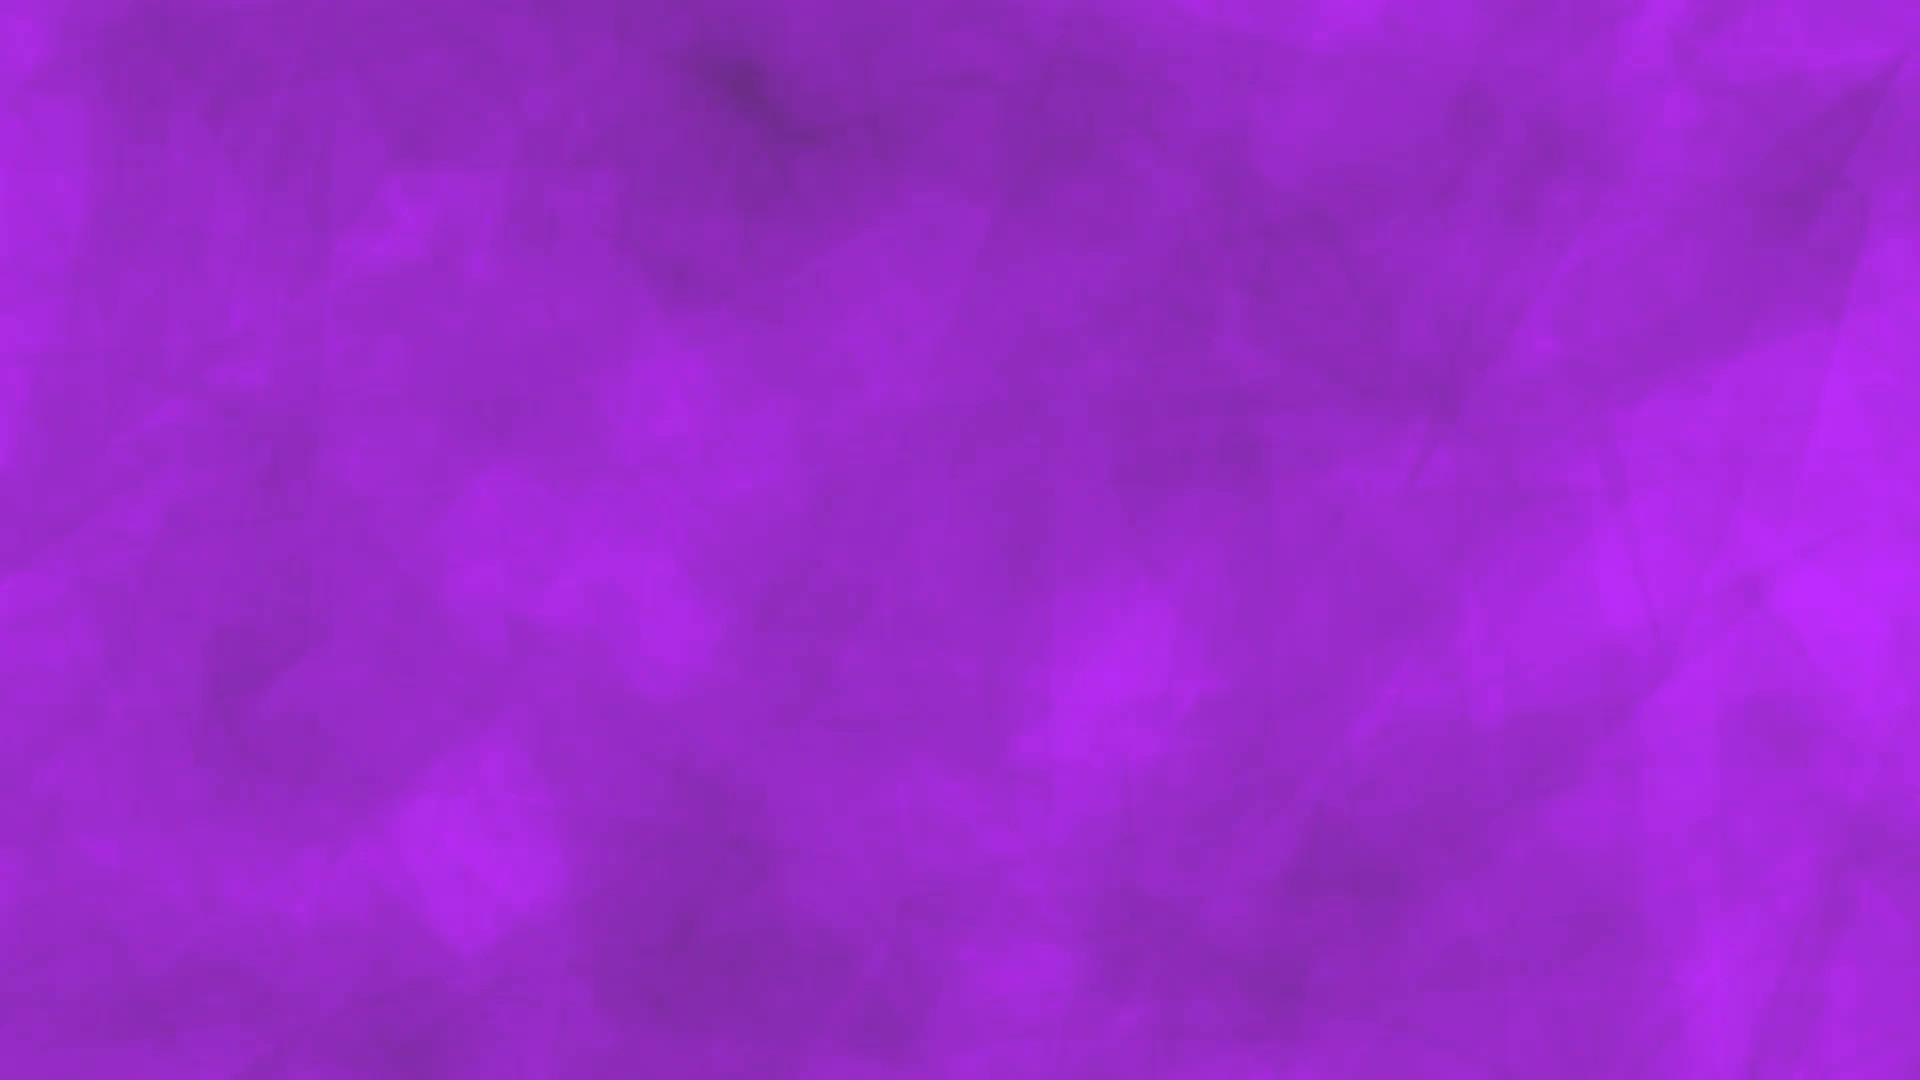 1920x1080 Crystalline motion background - Crystalized movement - Ice sheets -  Purple/violet/lavender Motion Background - VideoBlocks